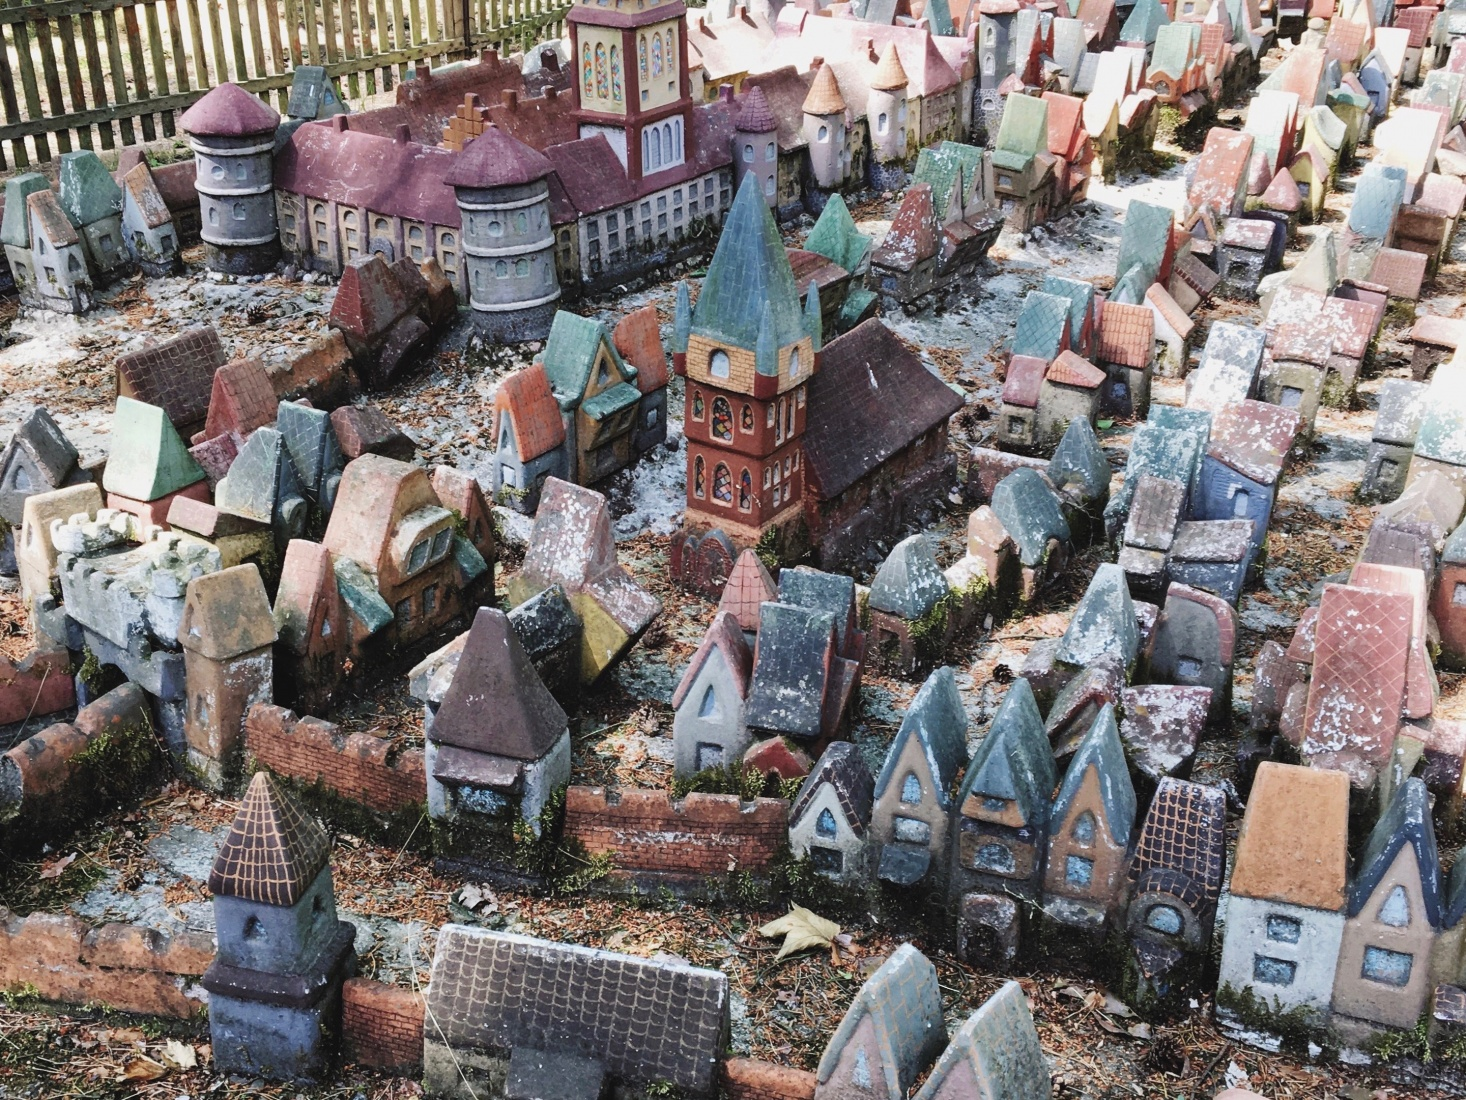 Miniature model of Kaliningrad medieval town center in a small park outside the center of Svetlogorsk, near modern day Kaliningrad, Russia.